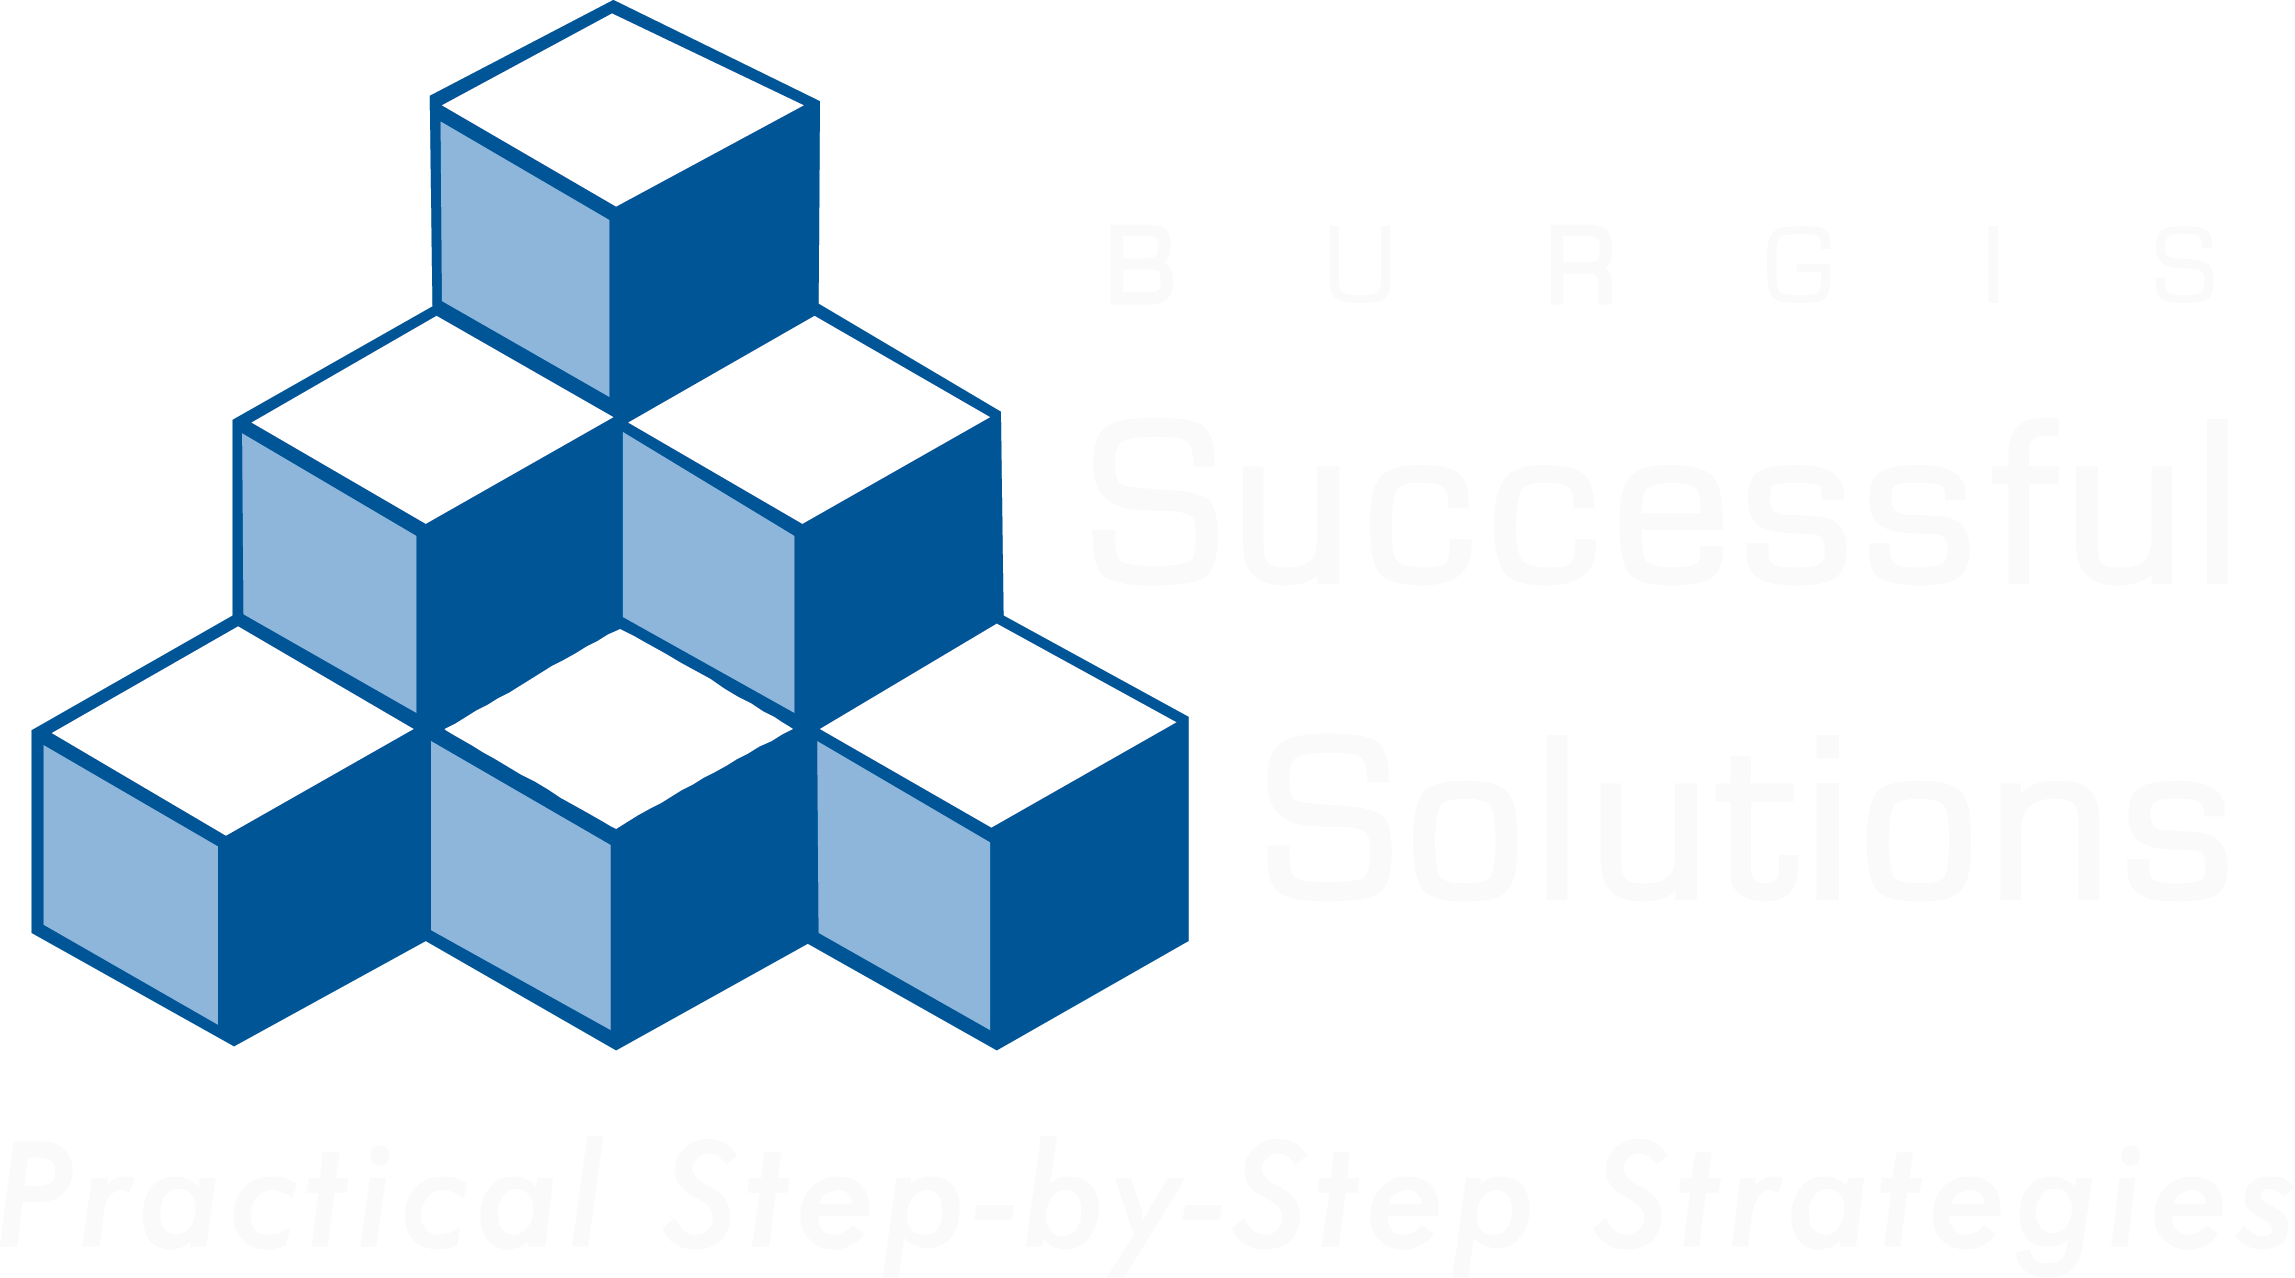 2295x1278 Take The Next Step Burgis Successful Solutions